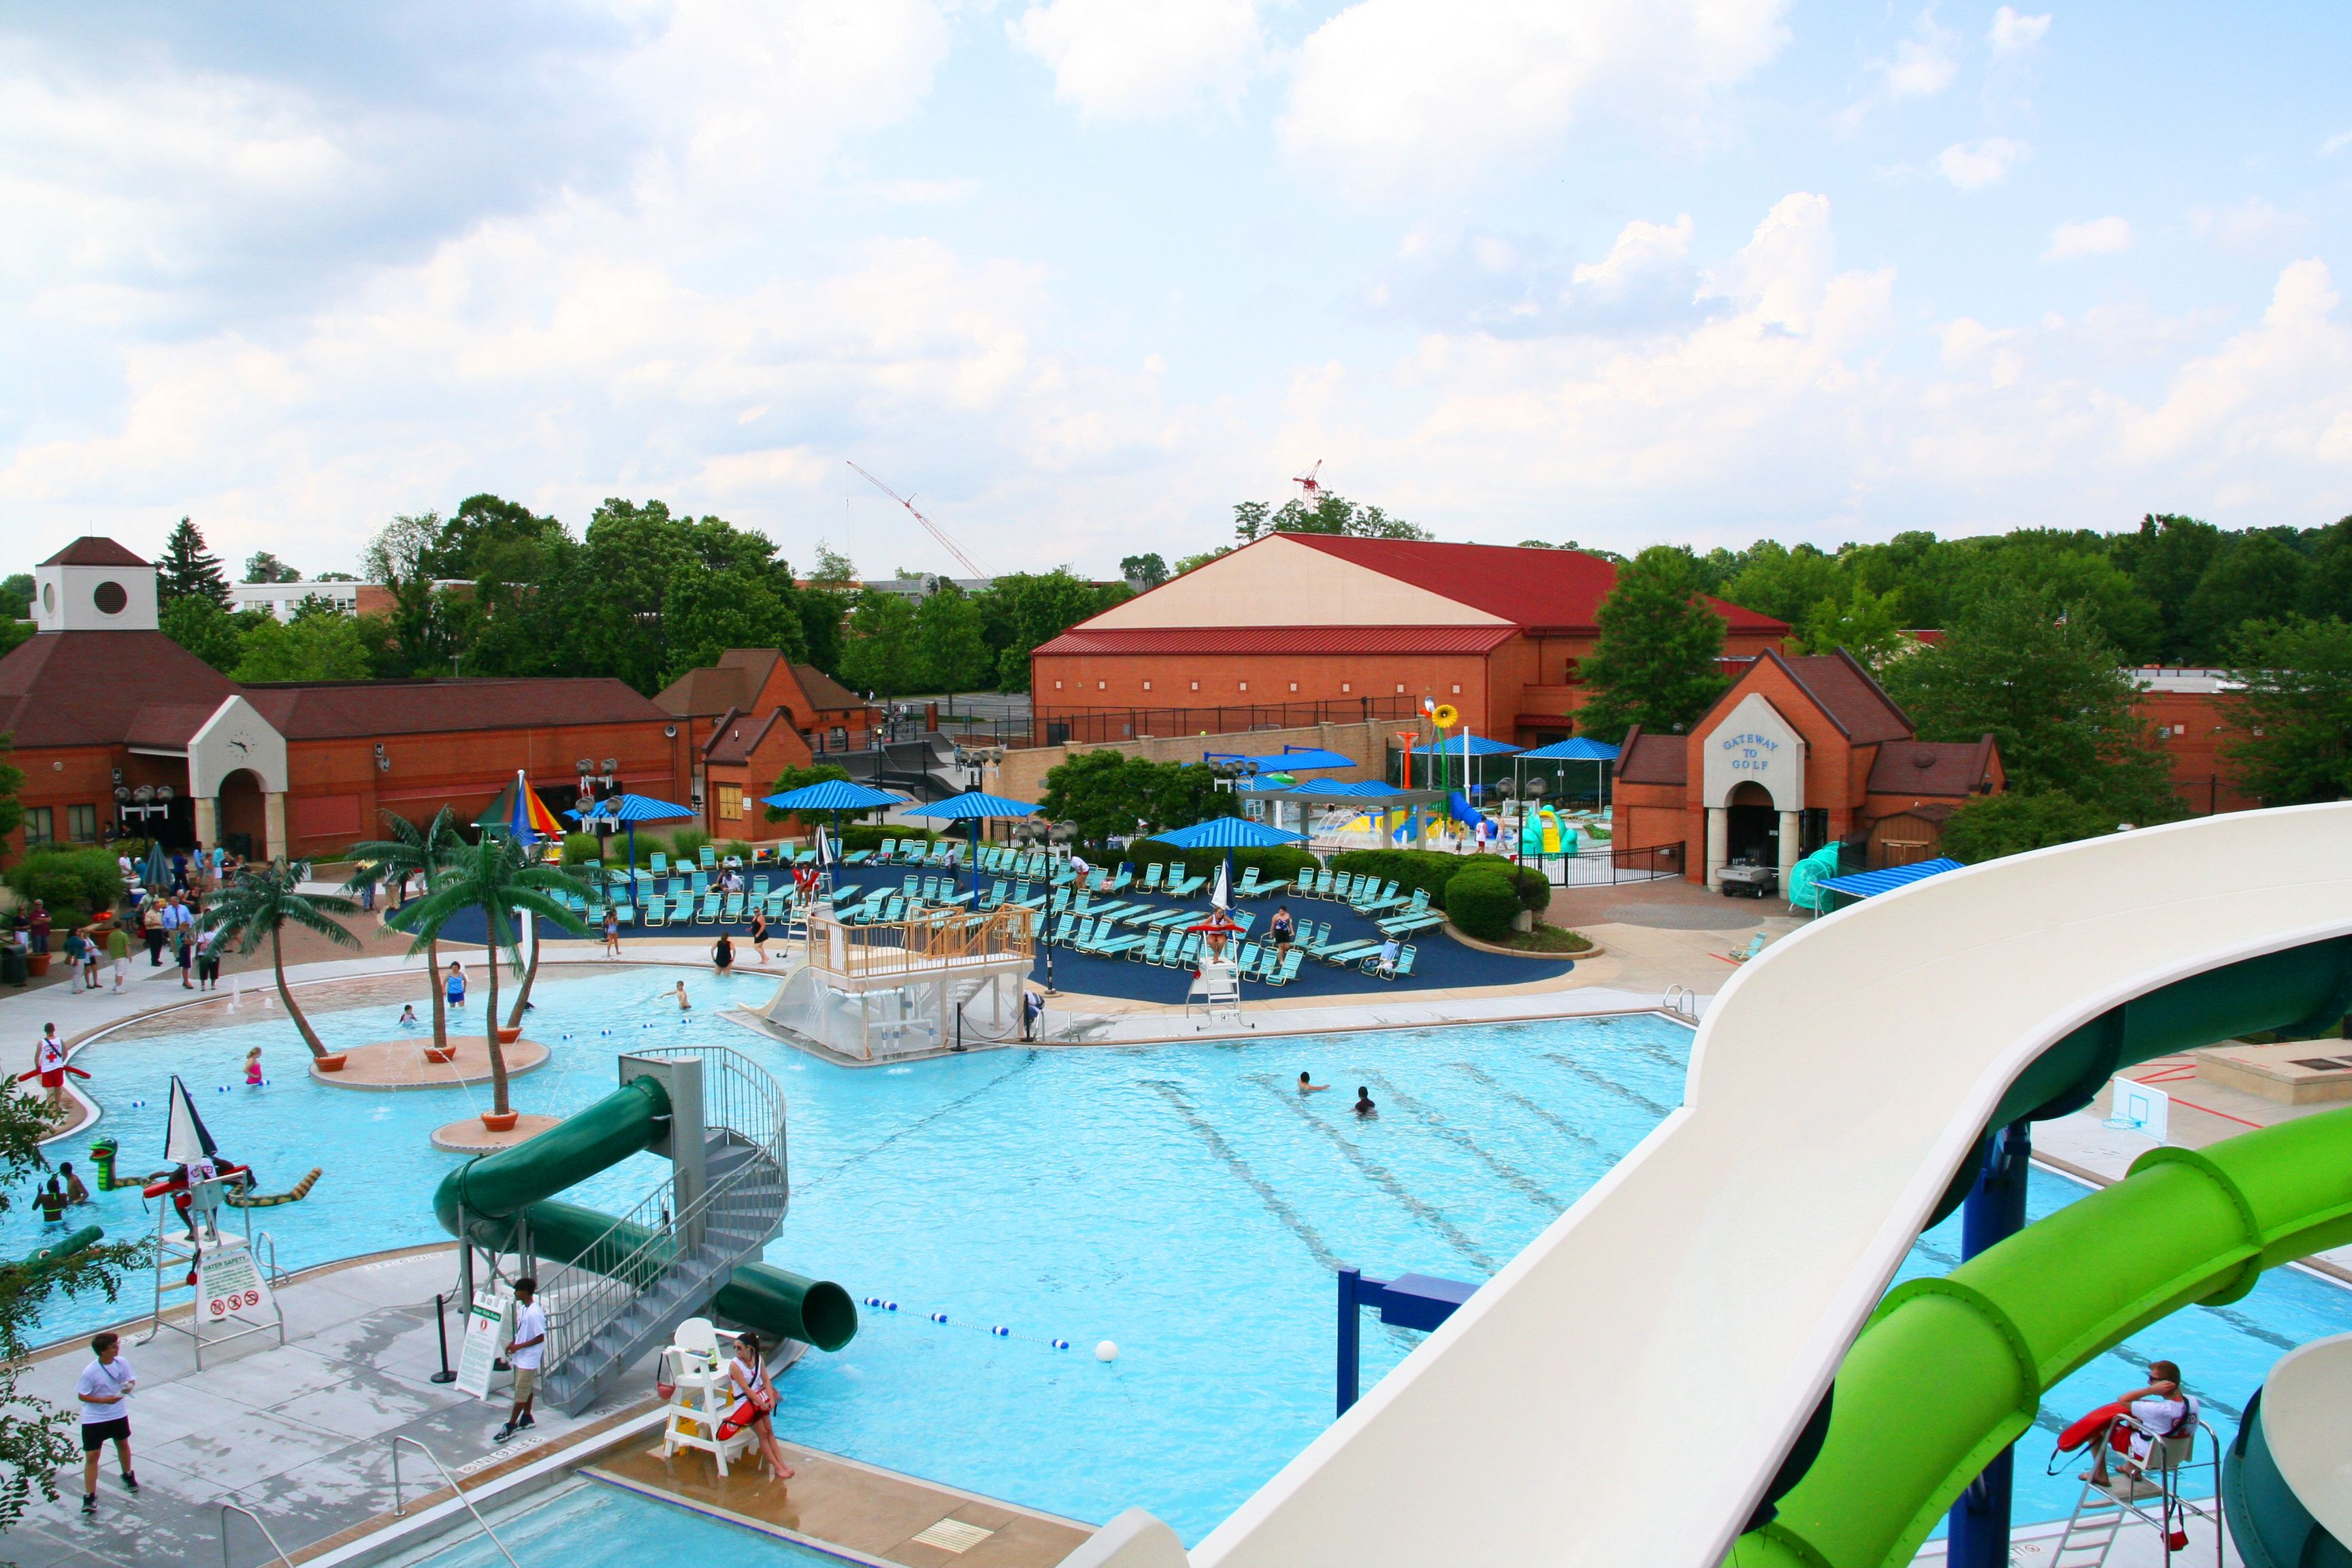 Pin By Smart Urban Living On Gaithersburg Parks Water Park Fun Places To Go Water Slides